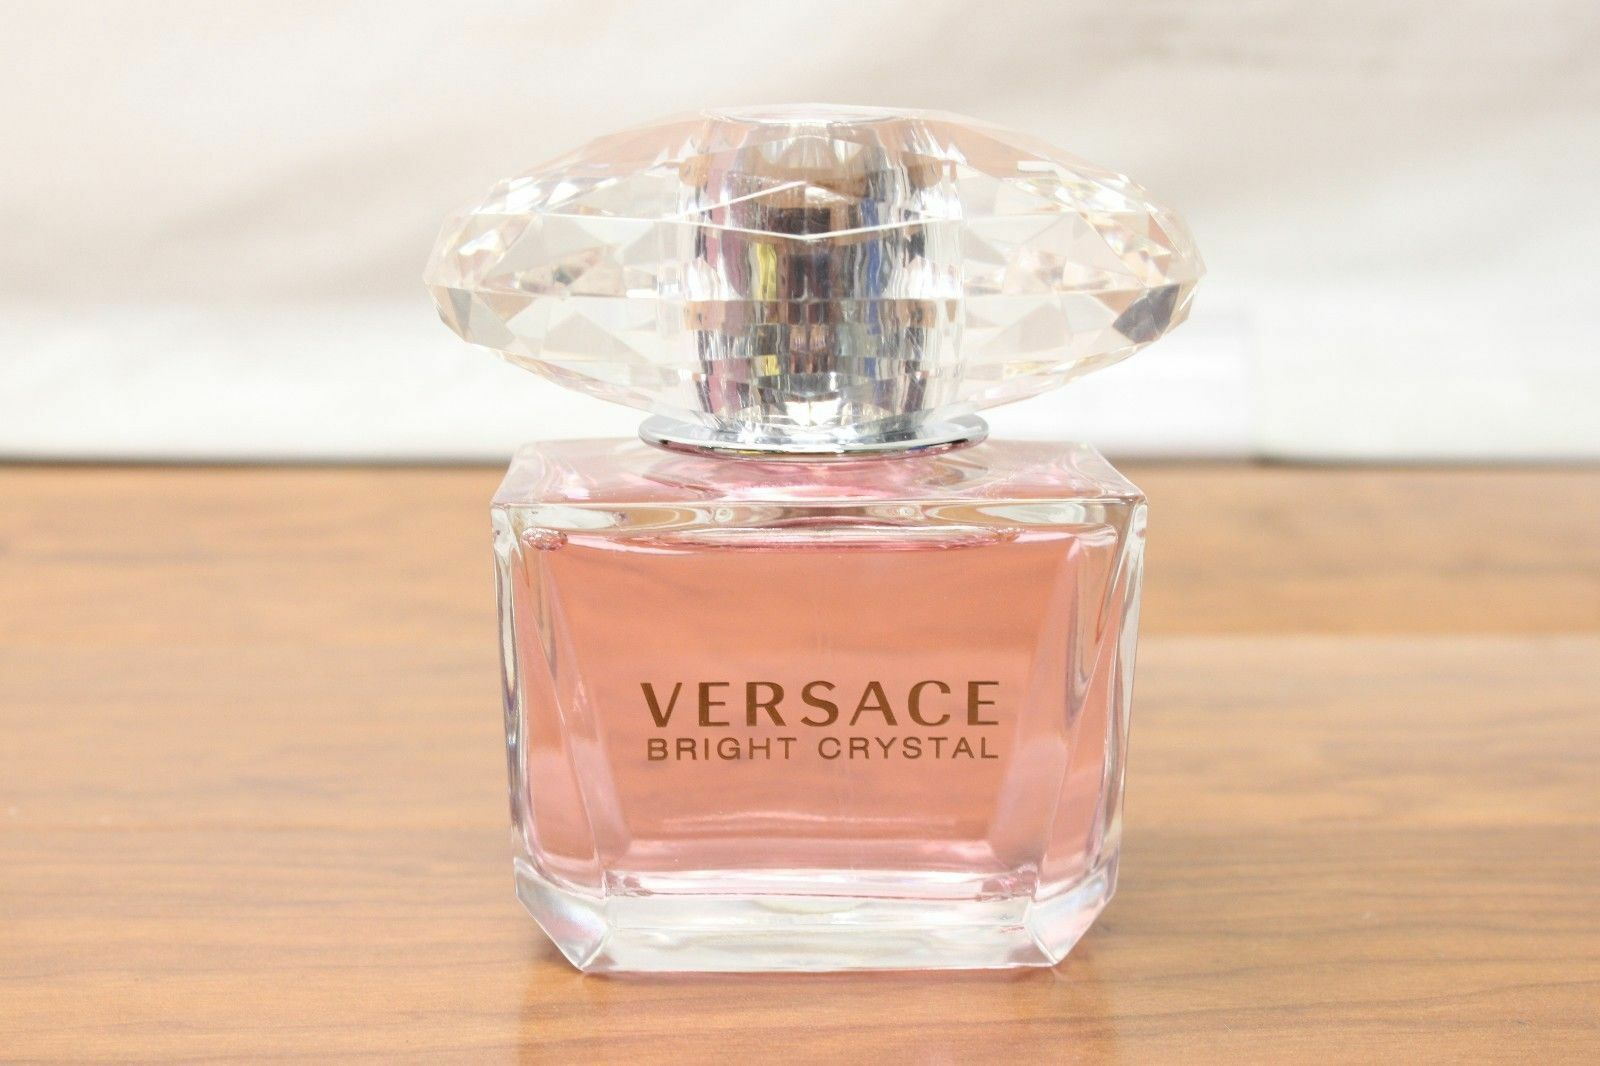 $5.76 - Versace Bright Crystal Eau De Toilette 10ml SAMPLE